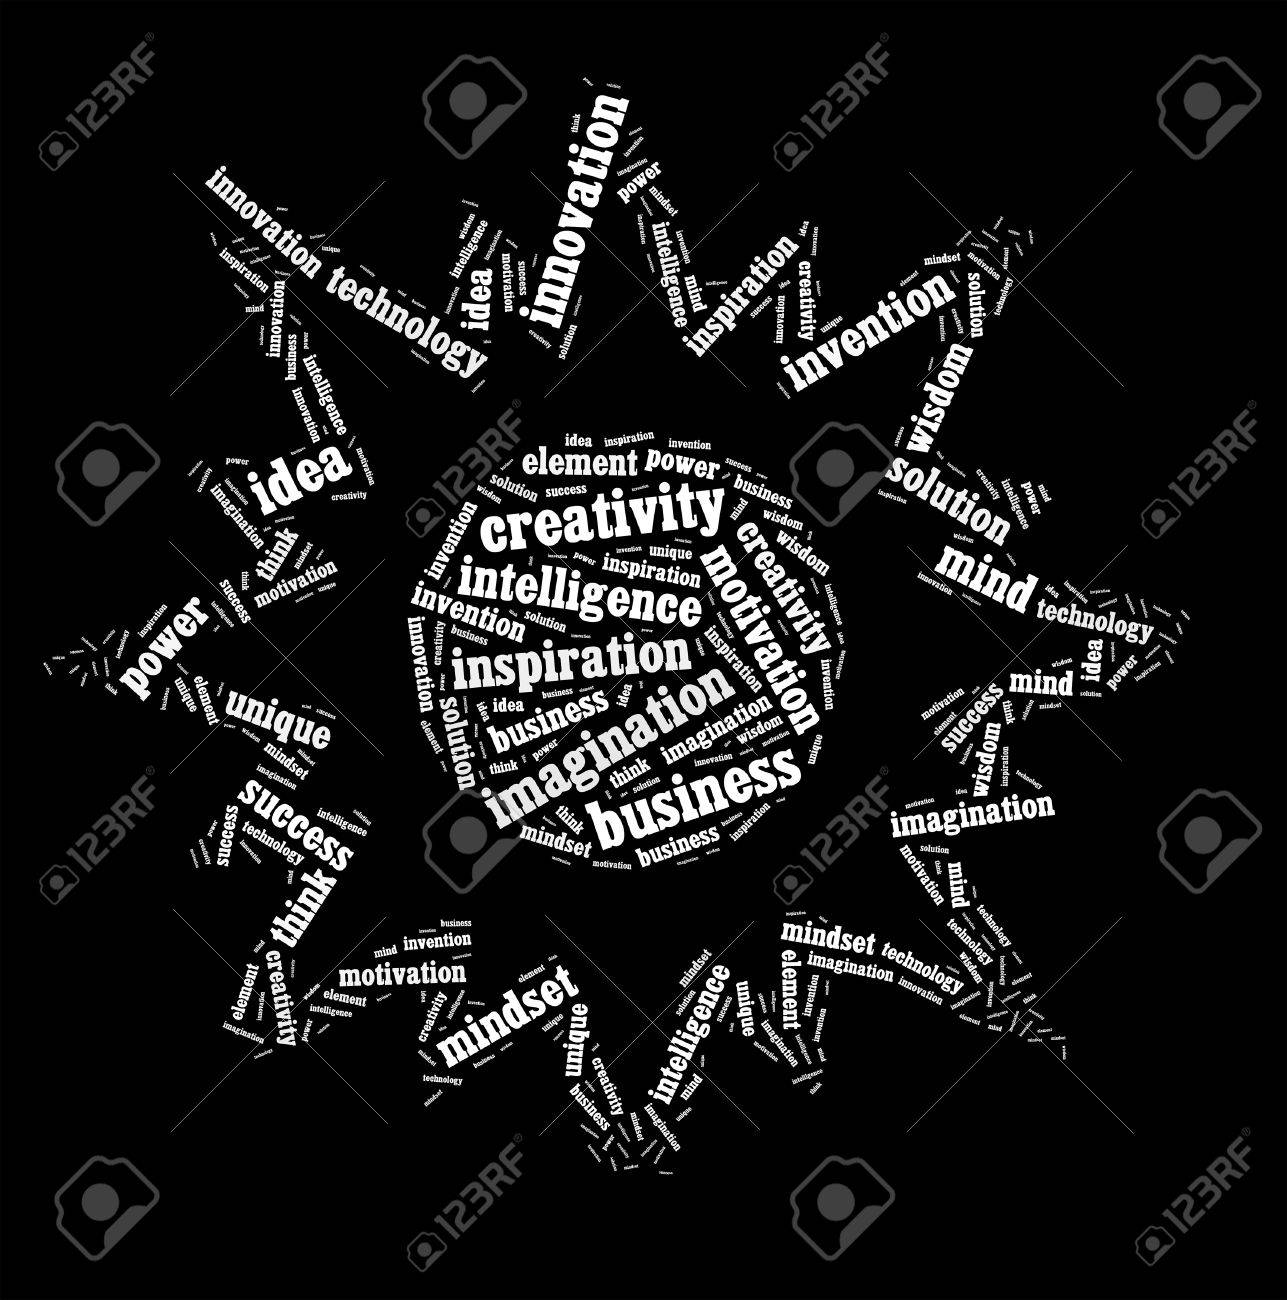 Creative thinking text cloud collage Stock Photo - 15875170